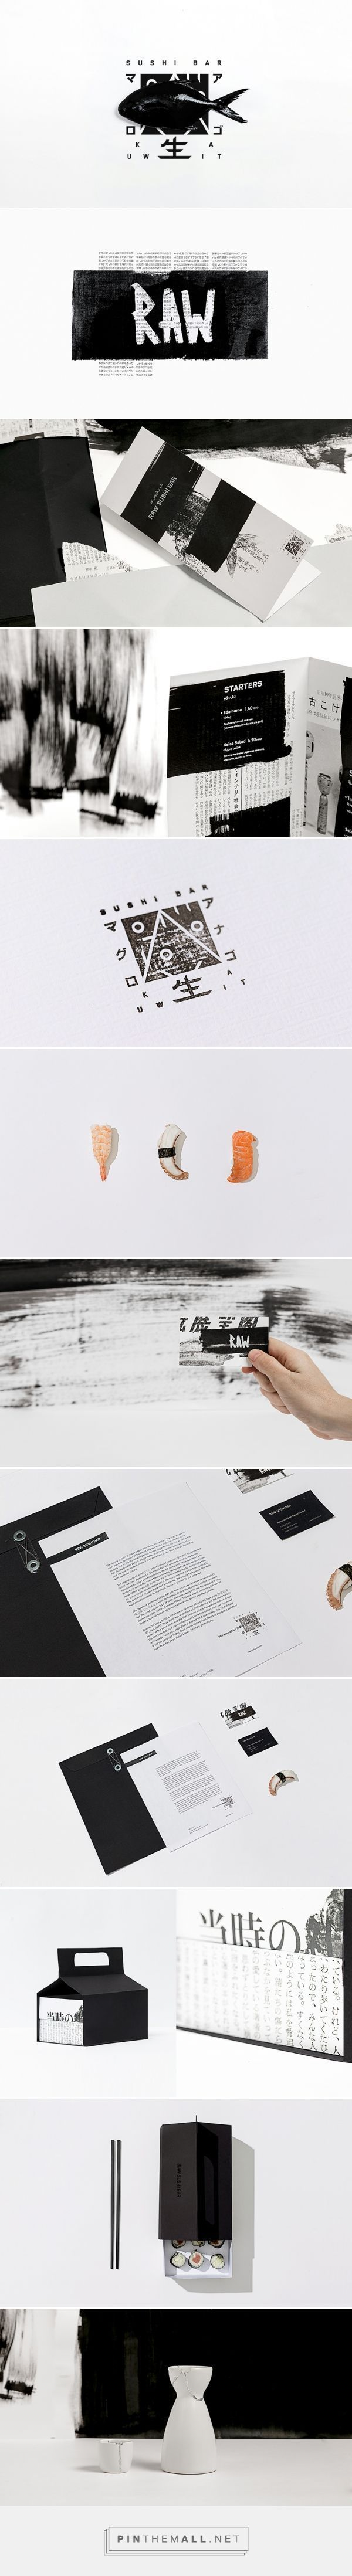 Food infographic  Food infographic  Raw Sushi Bar Restaurant Branding by Futura | Fivestar Brandin